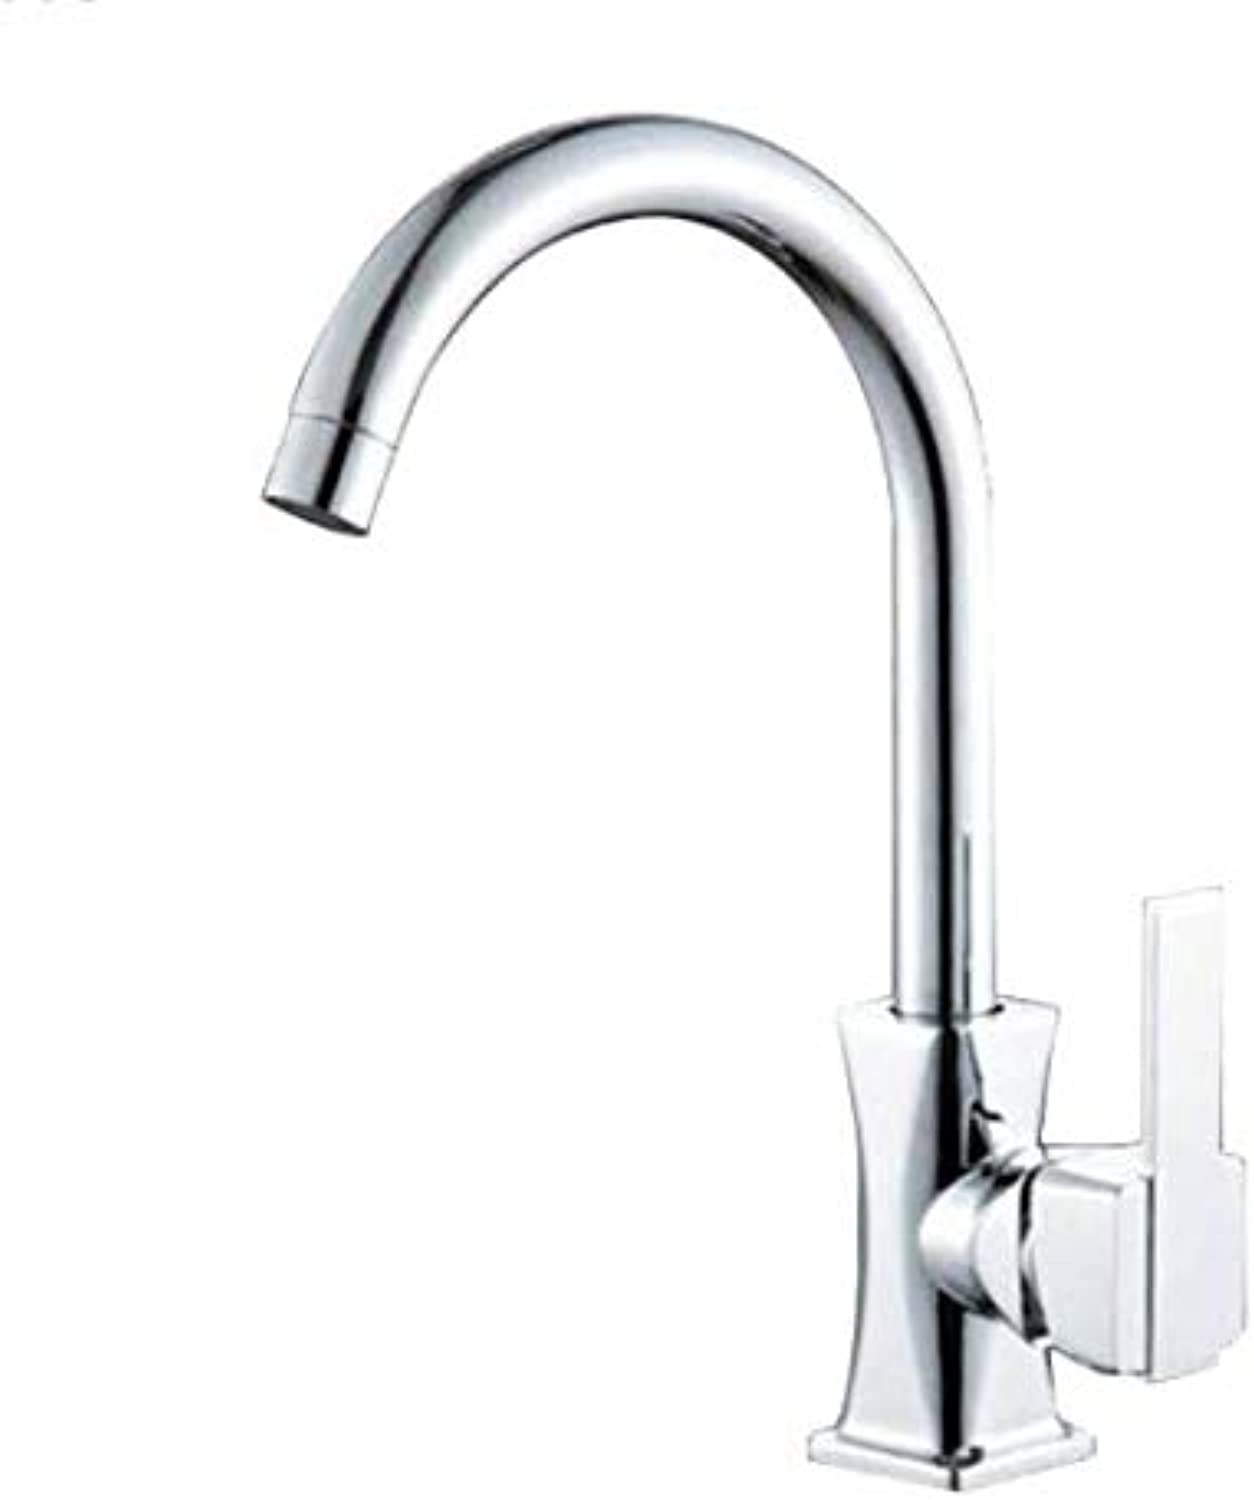 Counter Drinking Designer Arch redating Cold-Hot Dual-Purpose Single-Hole Faucet Kitchen Ceramic Disc Spool Faucet